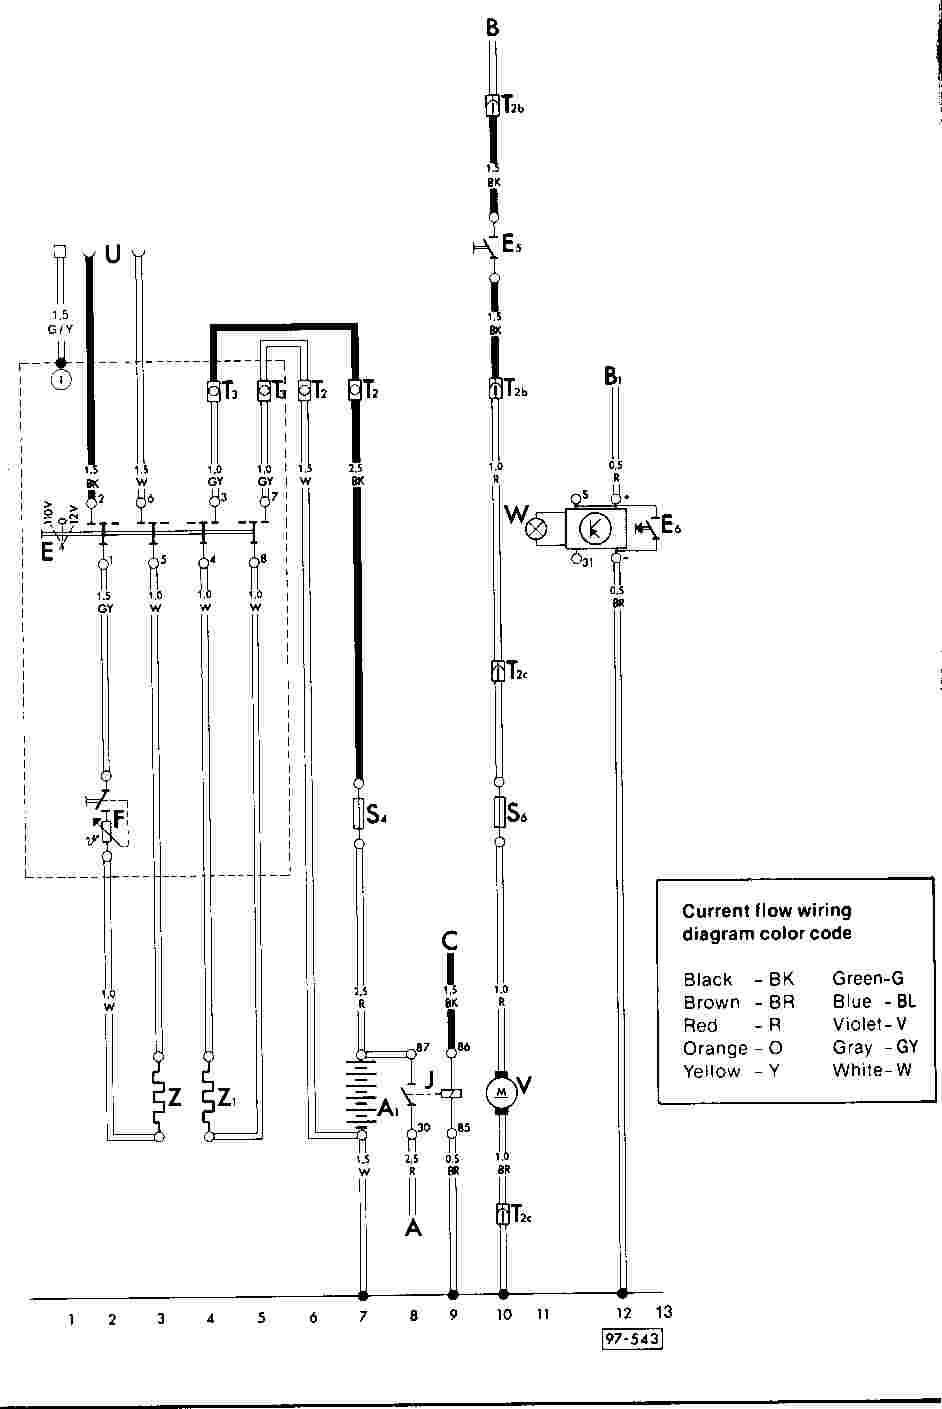 westwiring_ca1 2002 buick rendezvous radio wiring diagram 2003 pontiac montana 2003 buick rendezvous radio wiring diagram at panicattacktreatment.co